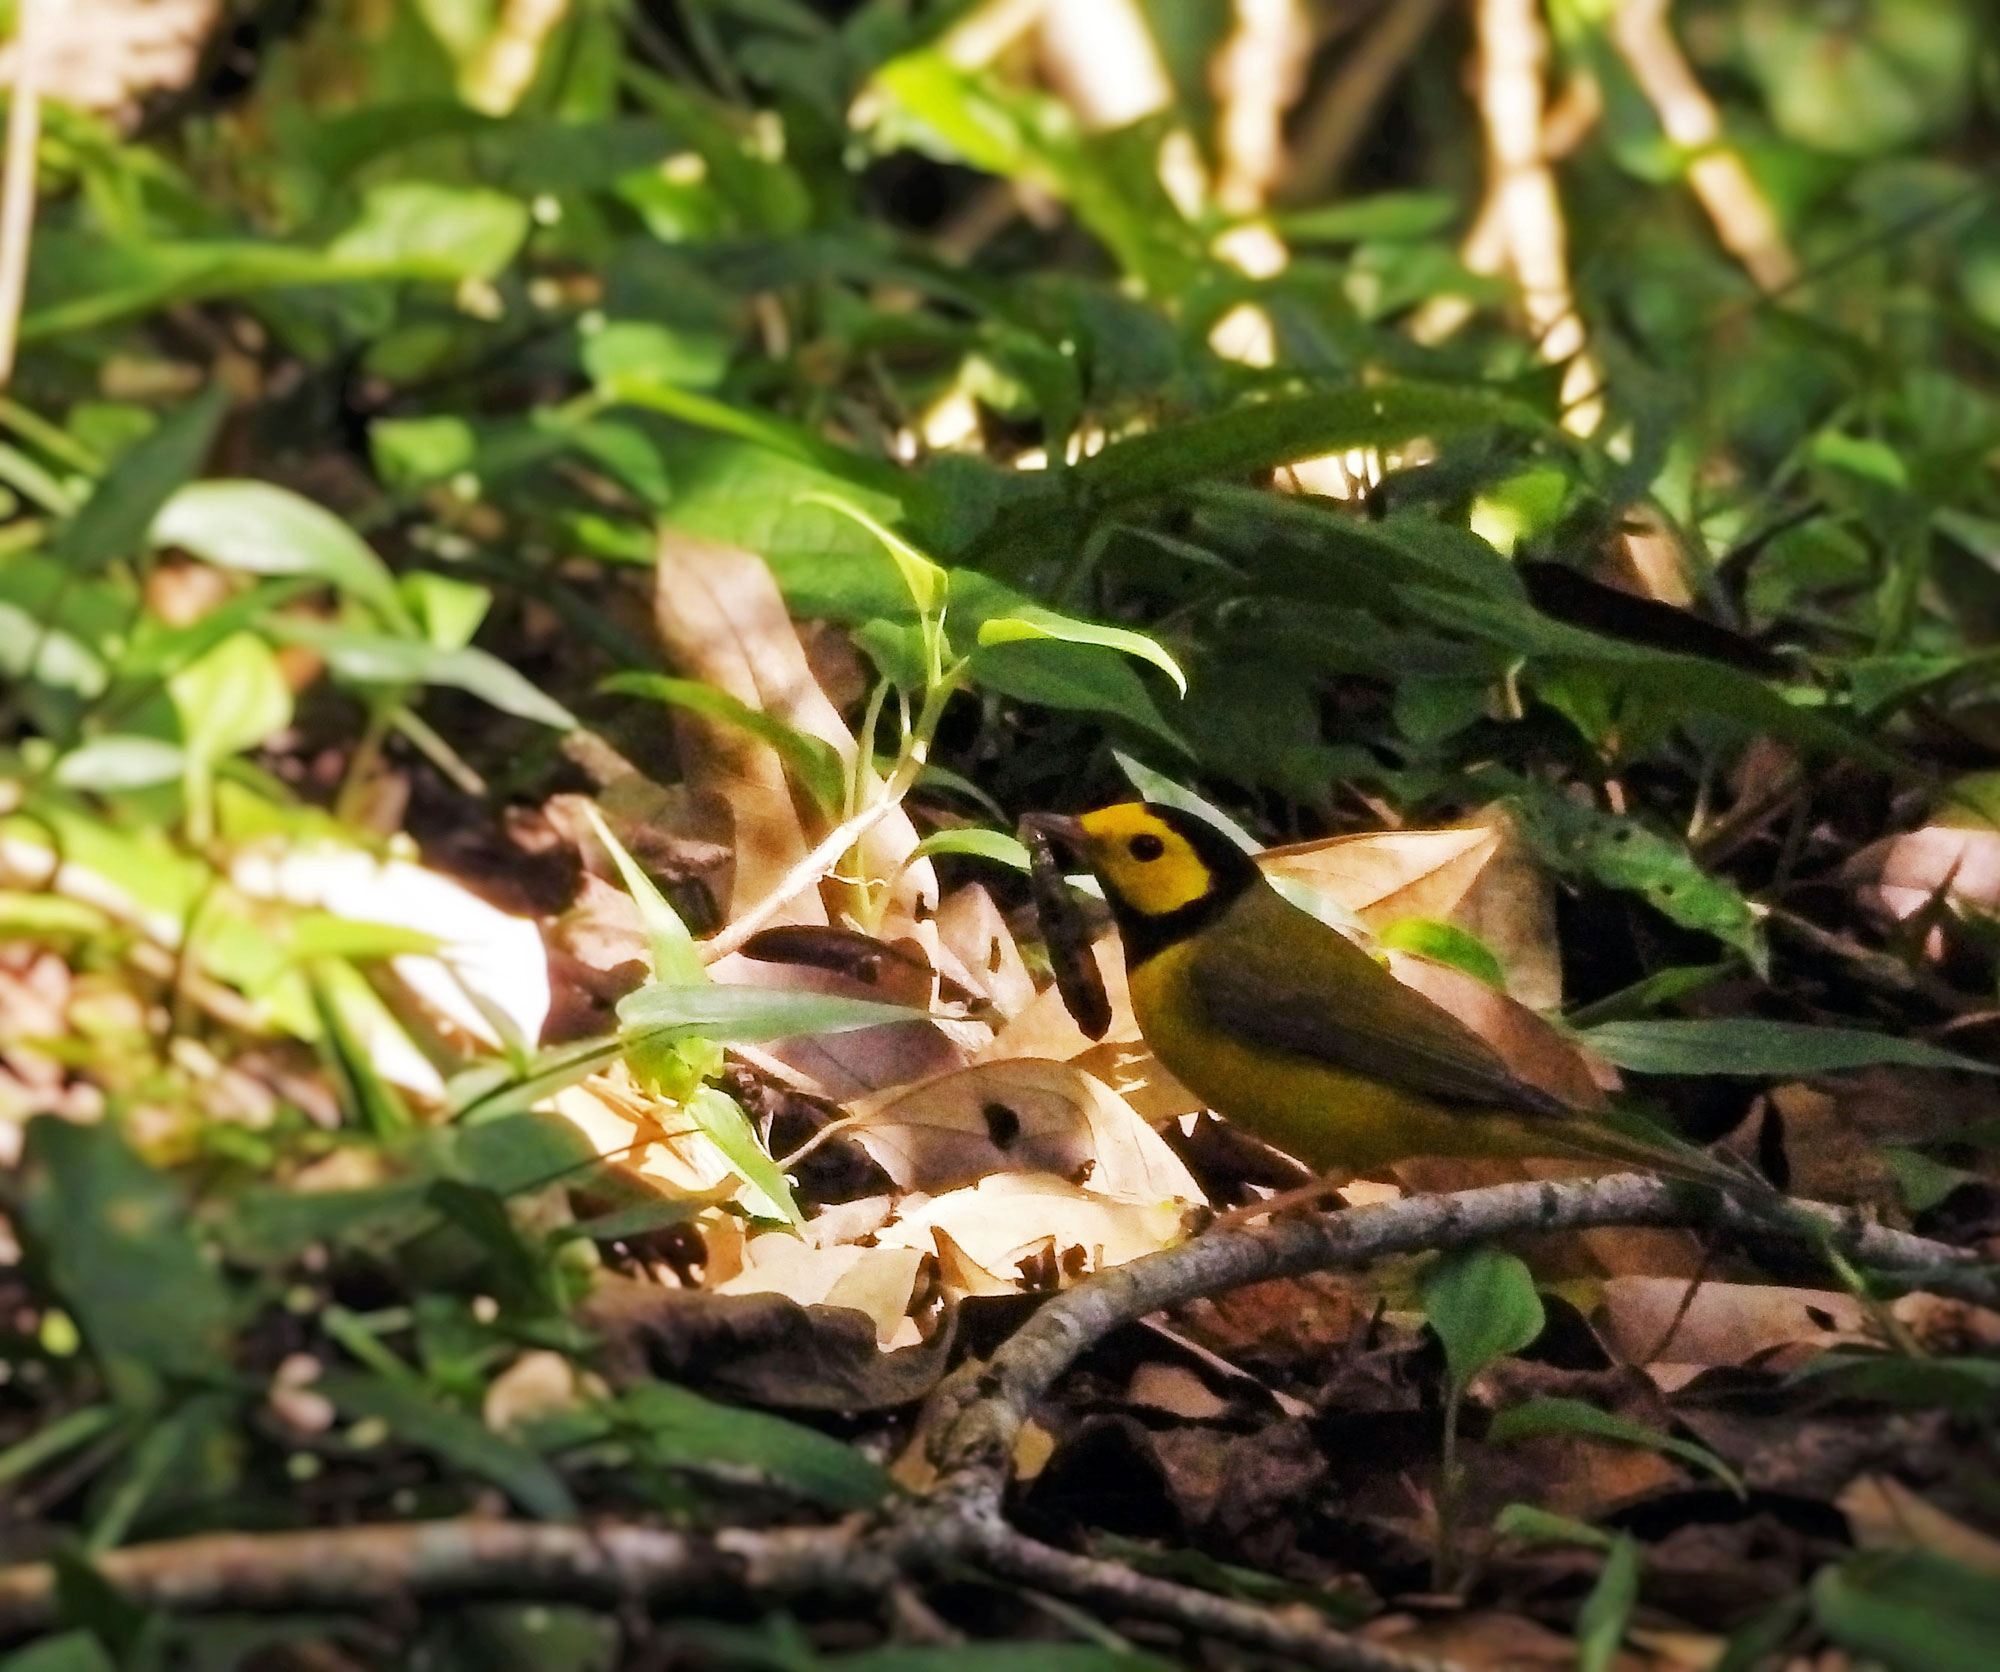 small yellow bird on forest floor with grub in its beak